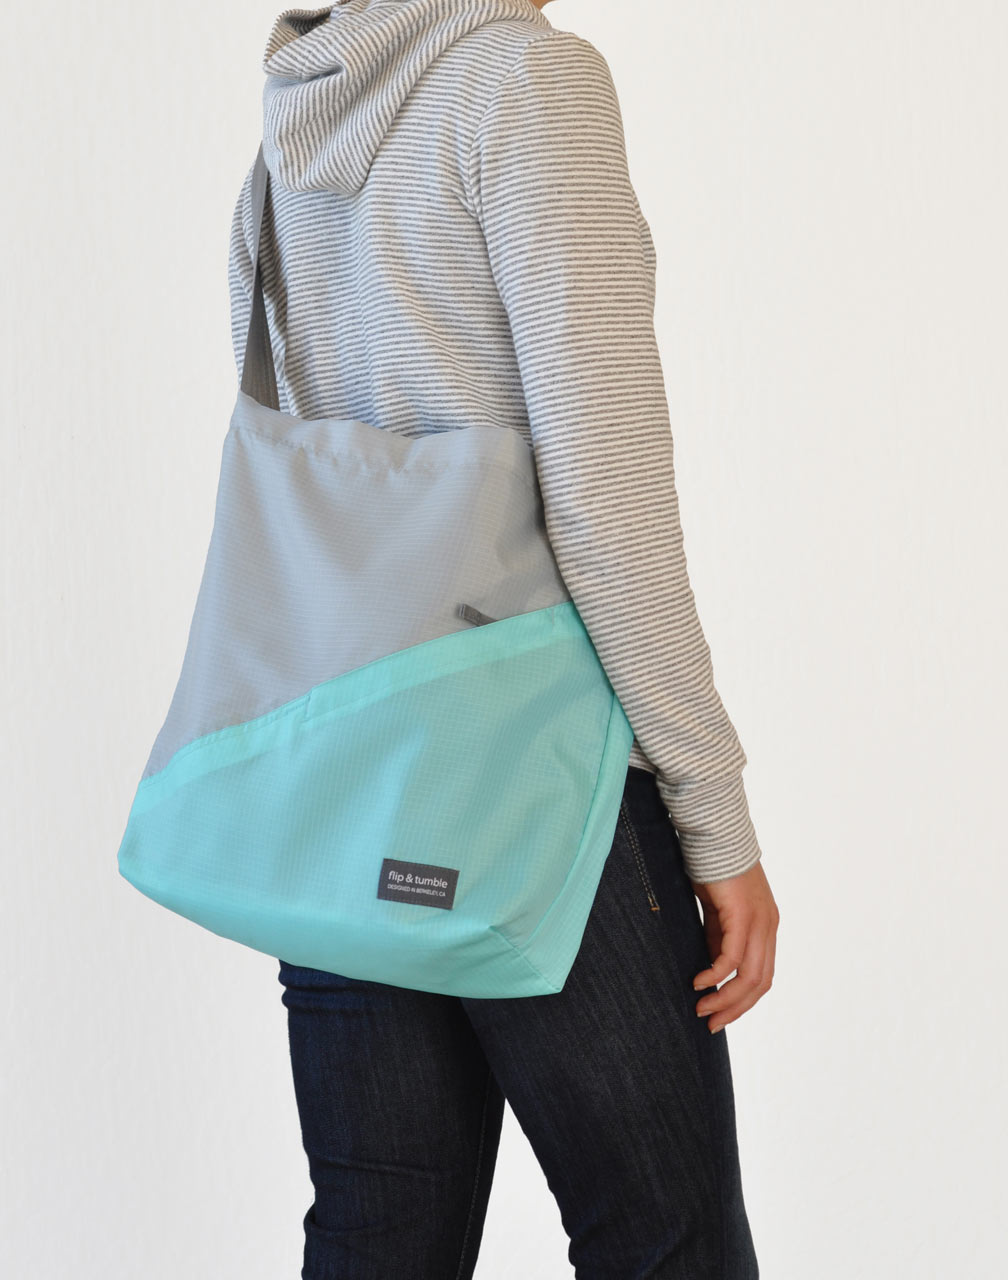 Flip-and-Tumble-Cross-Body-Bag-5